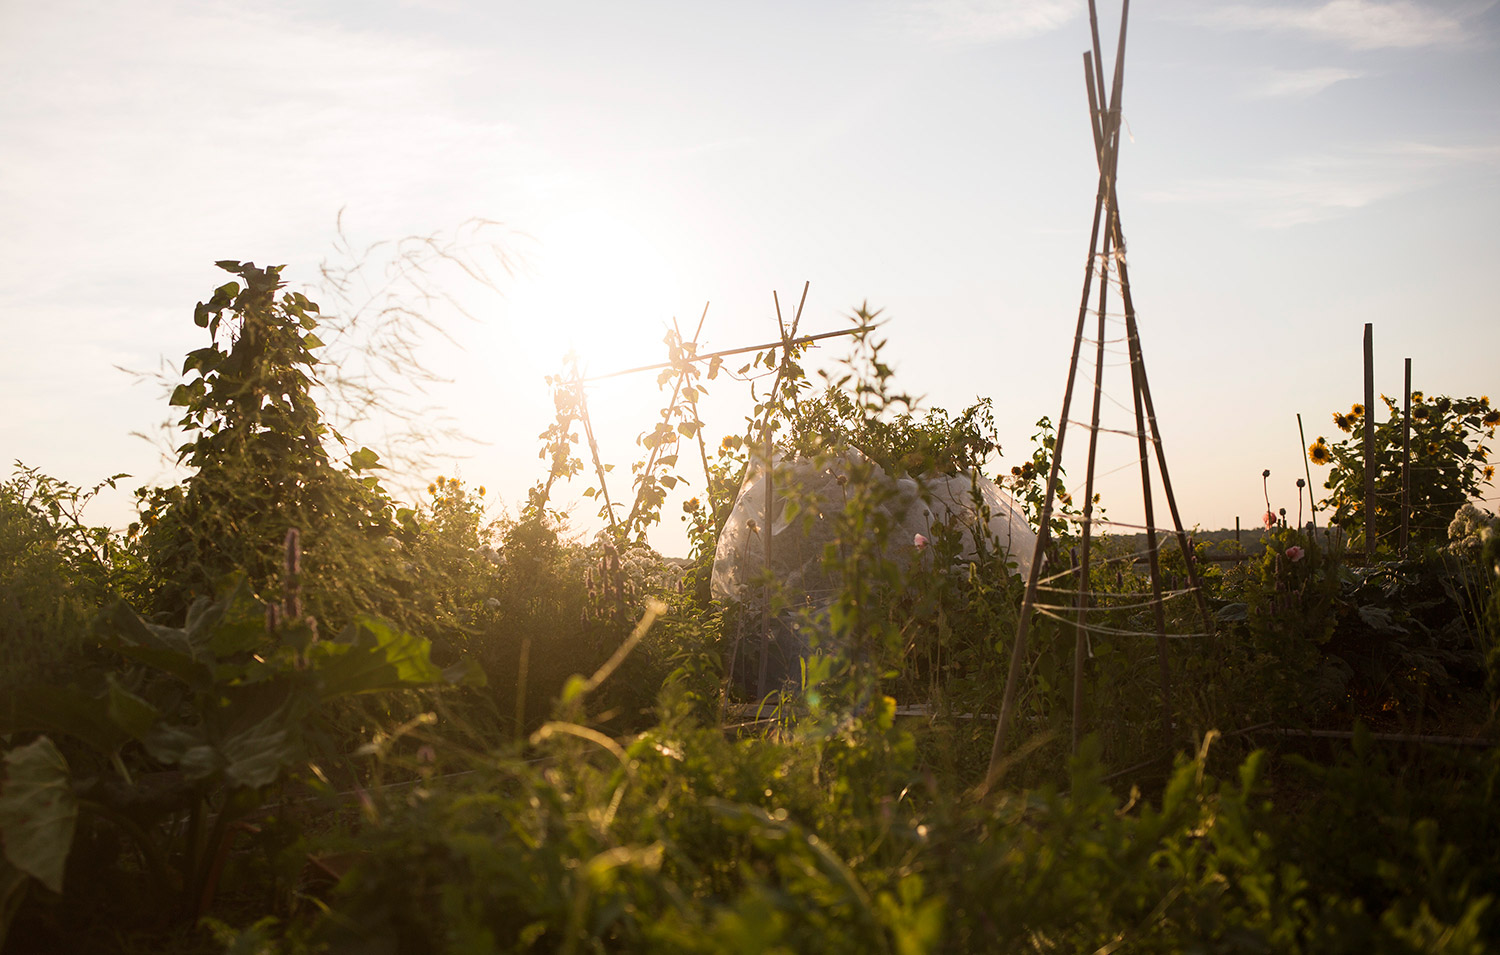 The sun begins to set at the North Street Community Garden on Saturday. The garden on Munjoy Hill offers views of Back Cove and even Mount Washington on clear days. Brianna Soukup/Staff Photographer